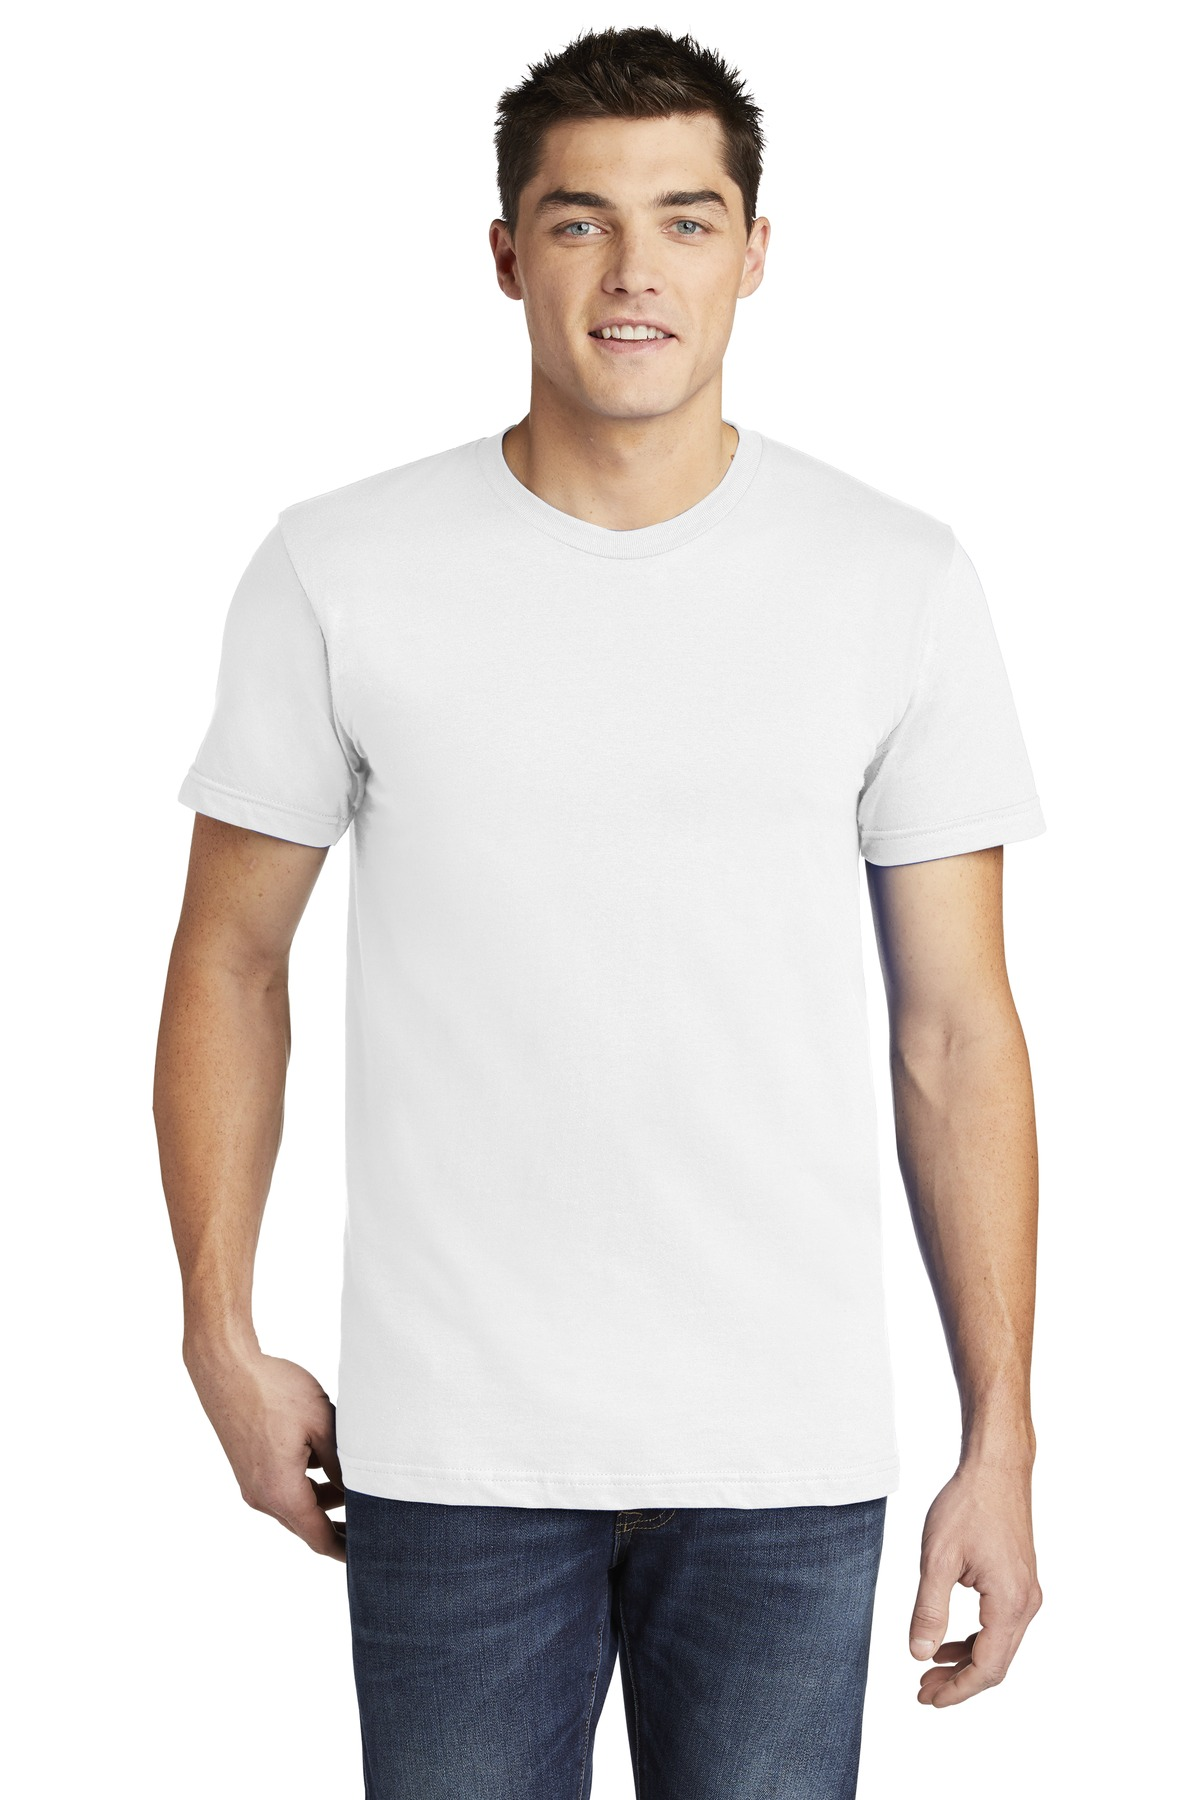 American Apparel  ®  USA Collection Fine Jersey T-Shirt. 2001A - White